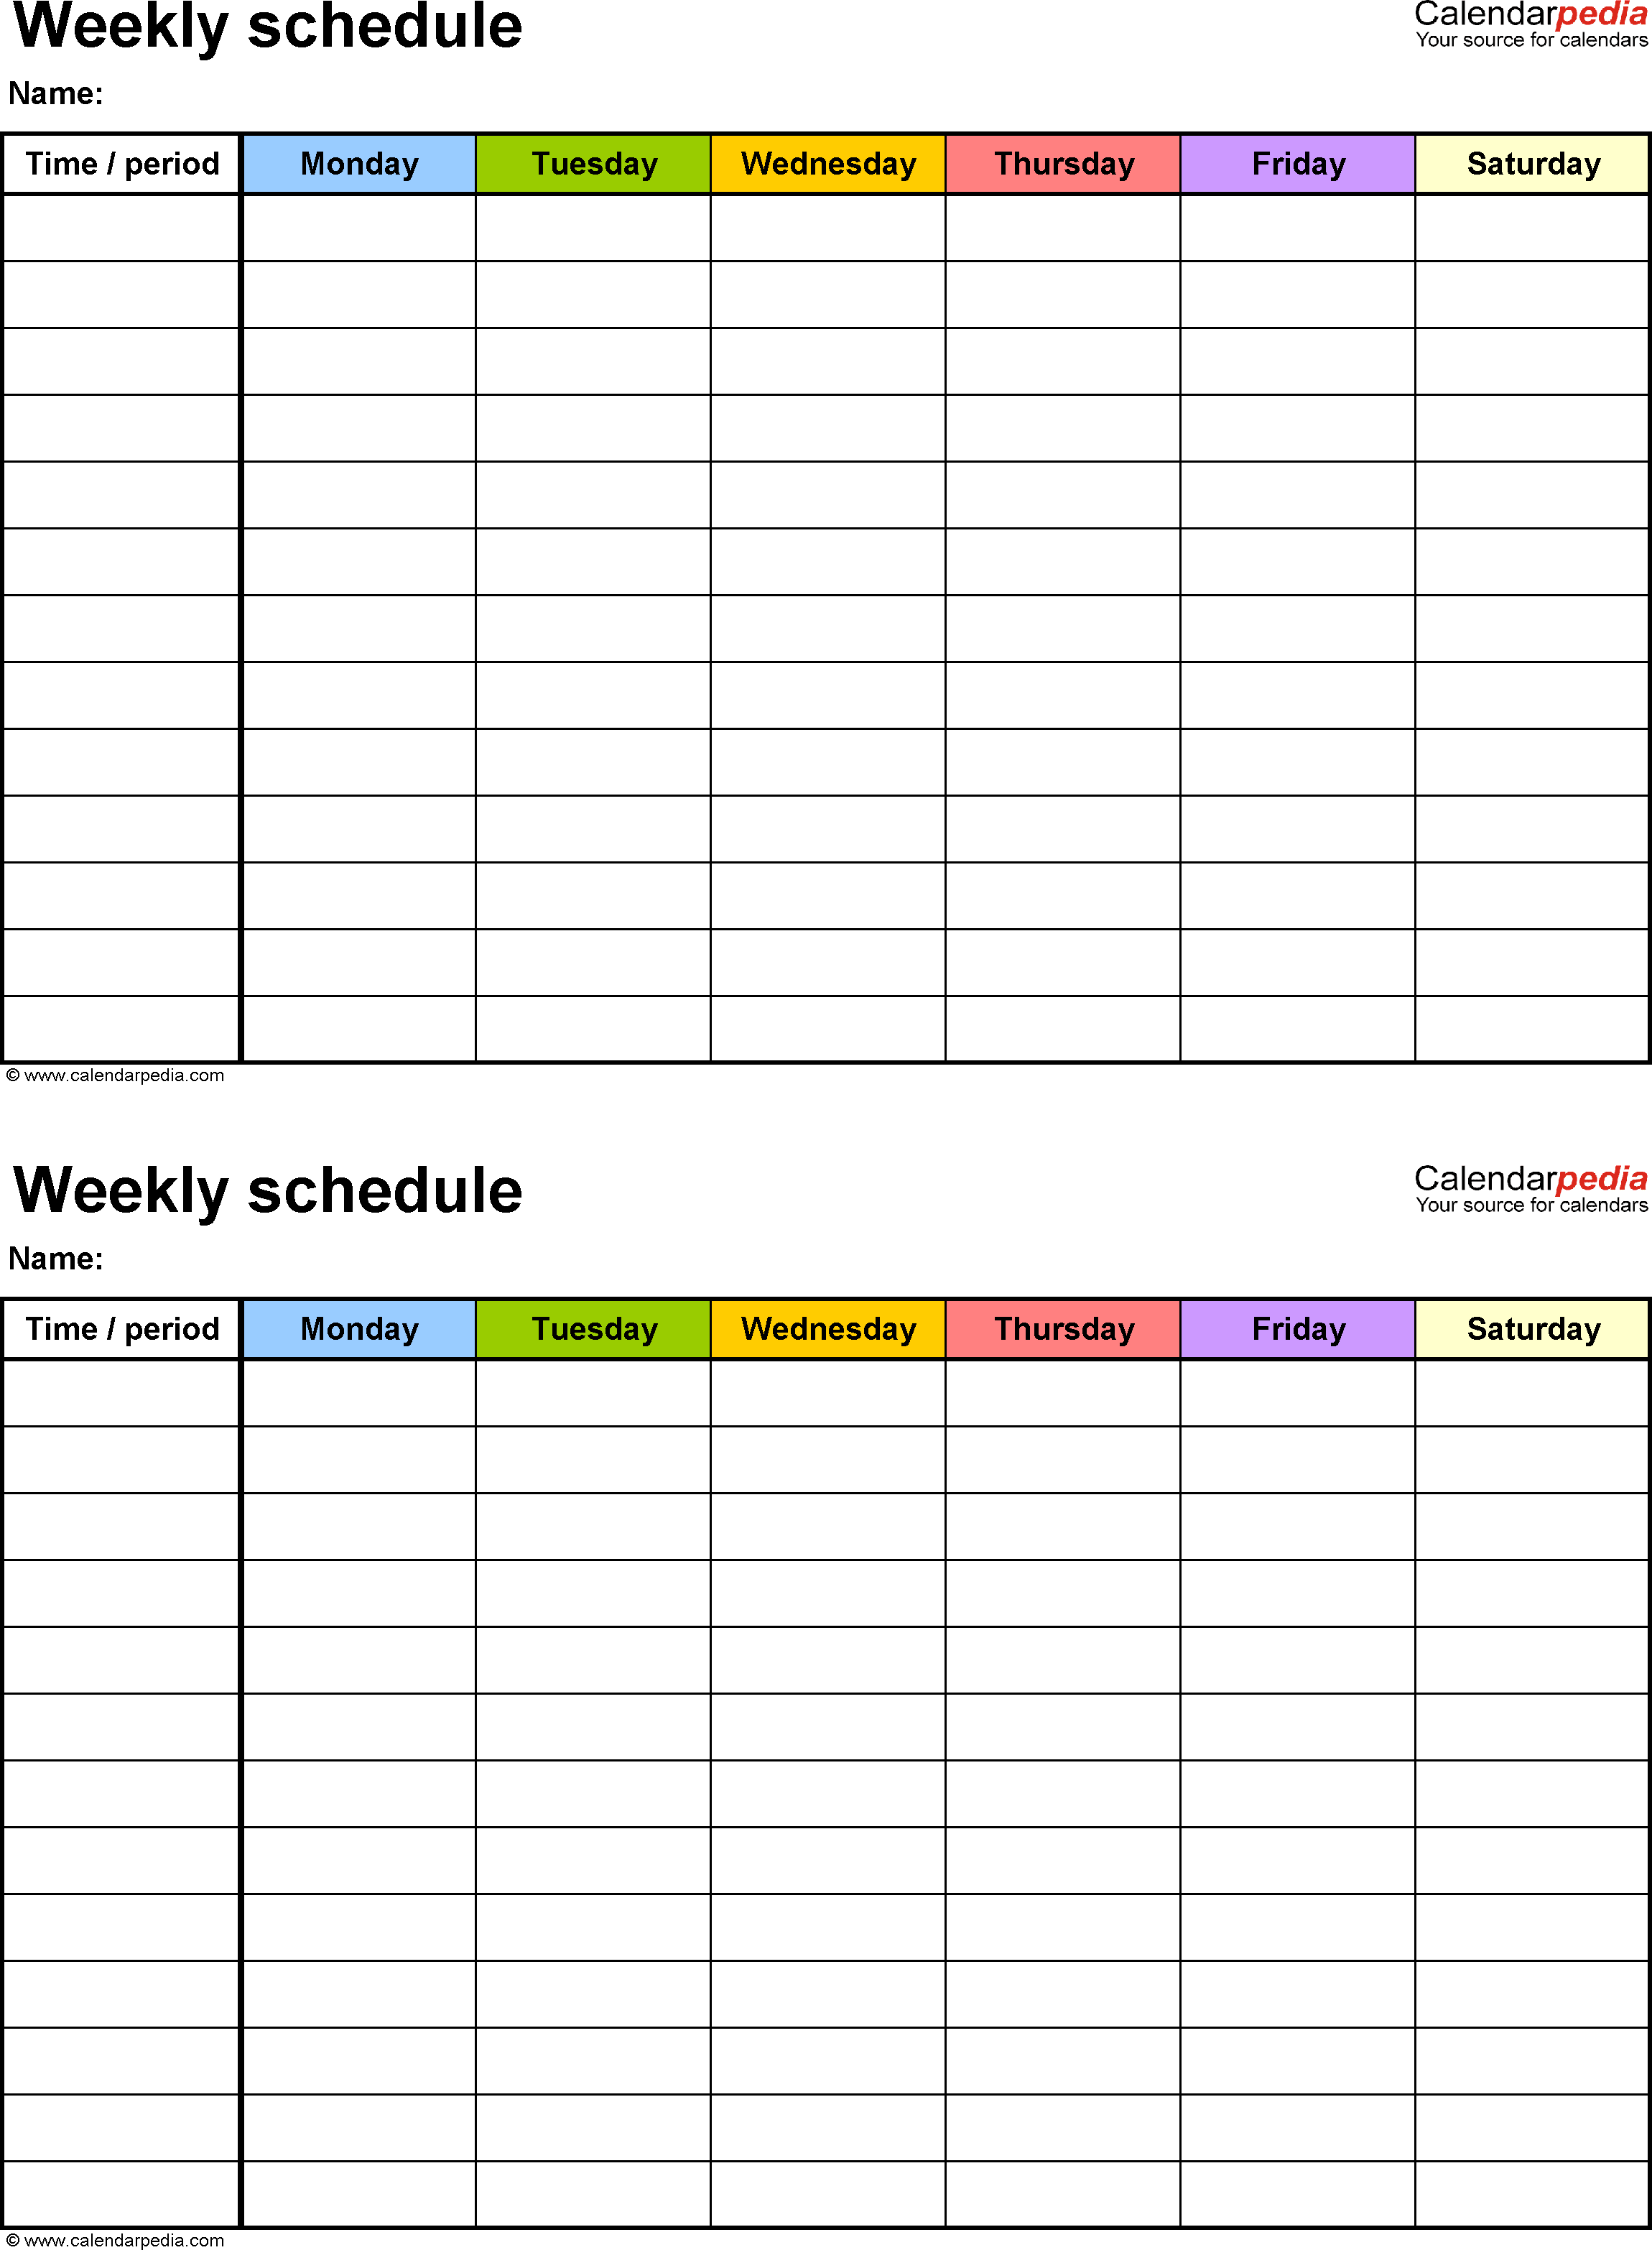 Weekly Schedule Template 16+ Free Word, Excel, PDF Download